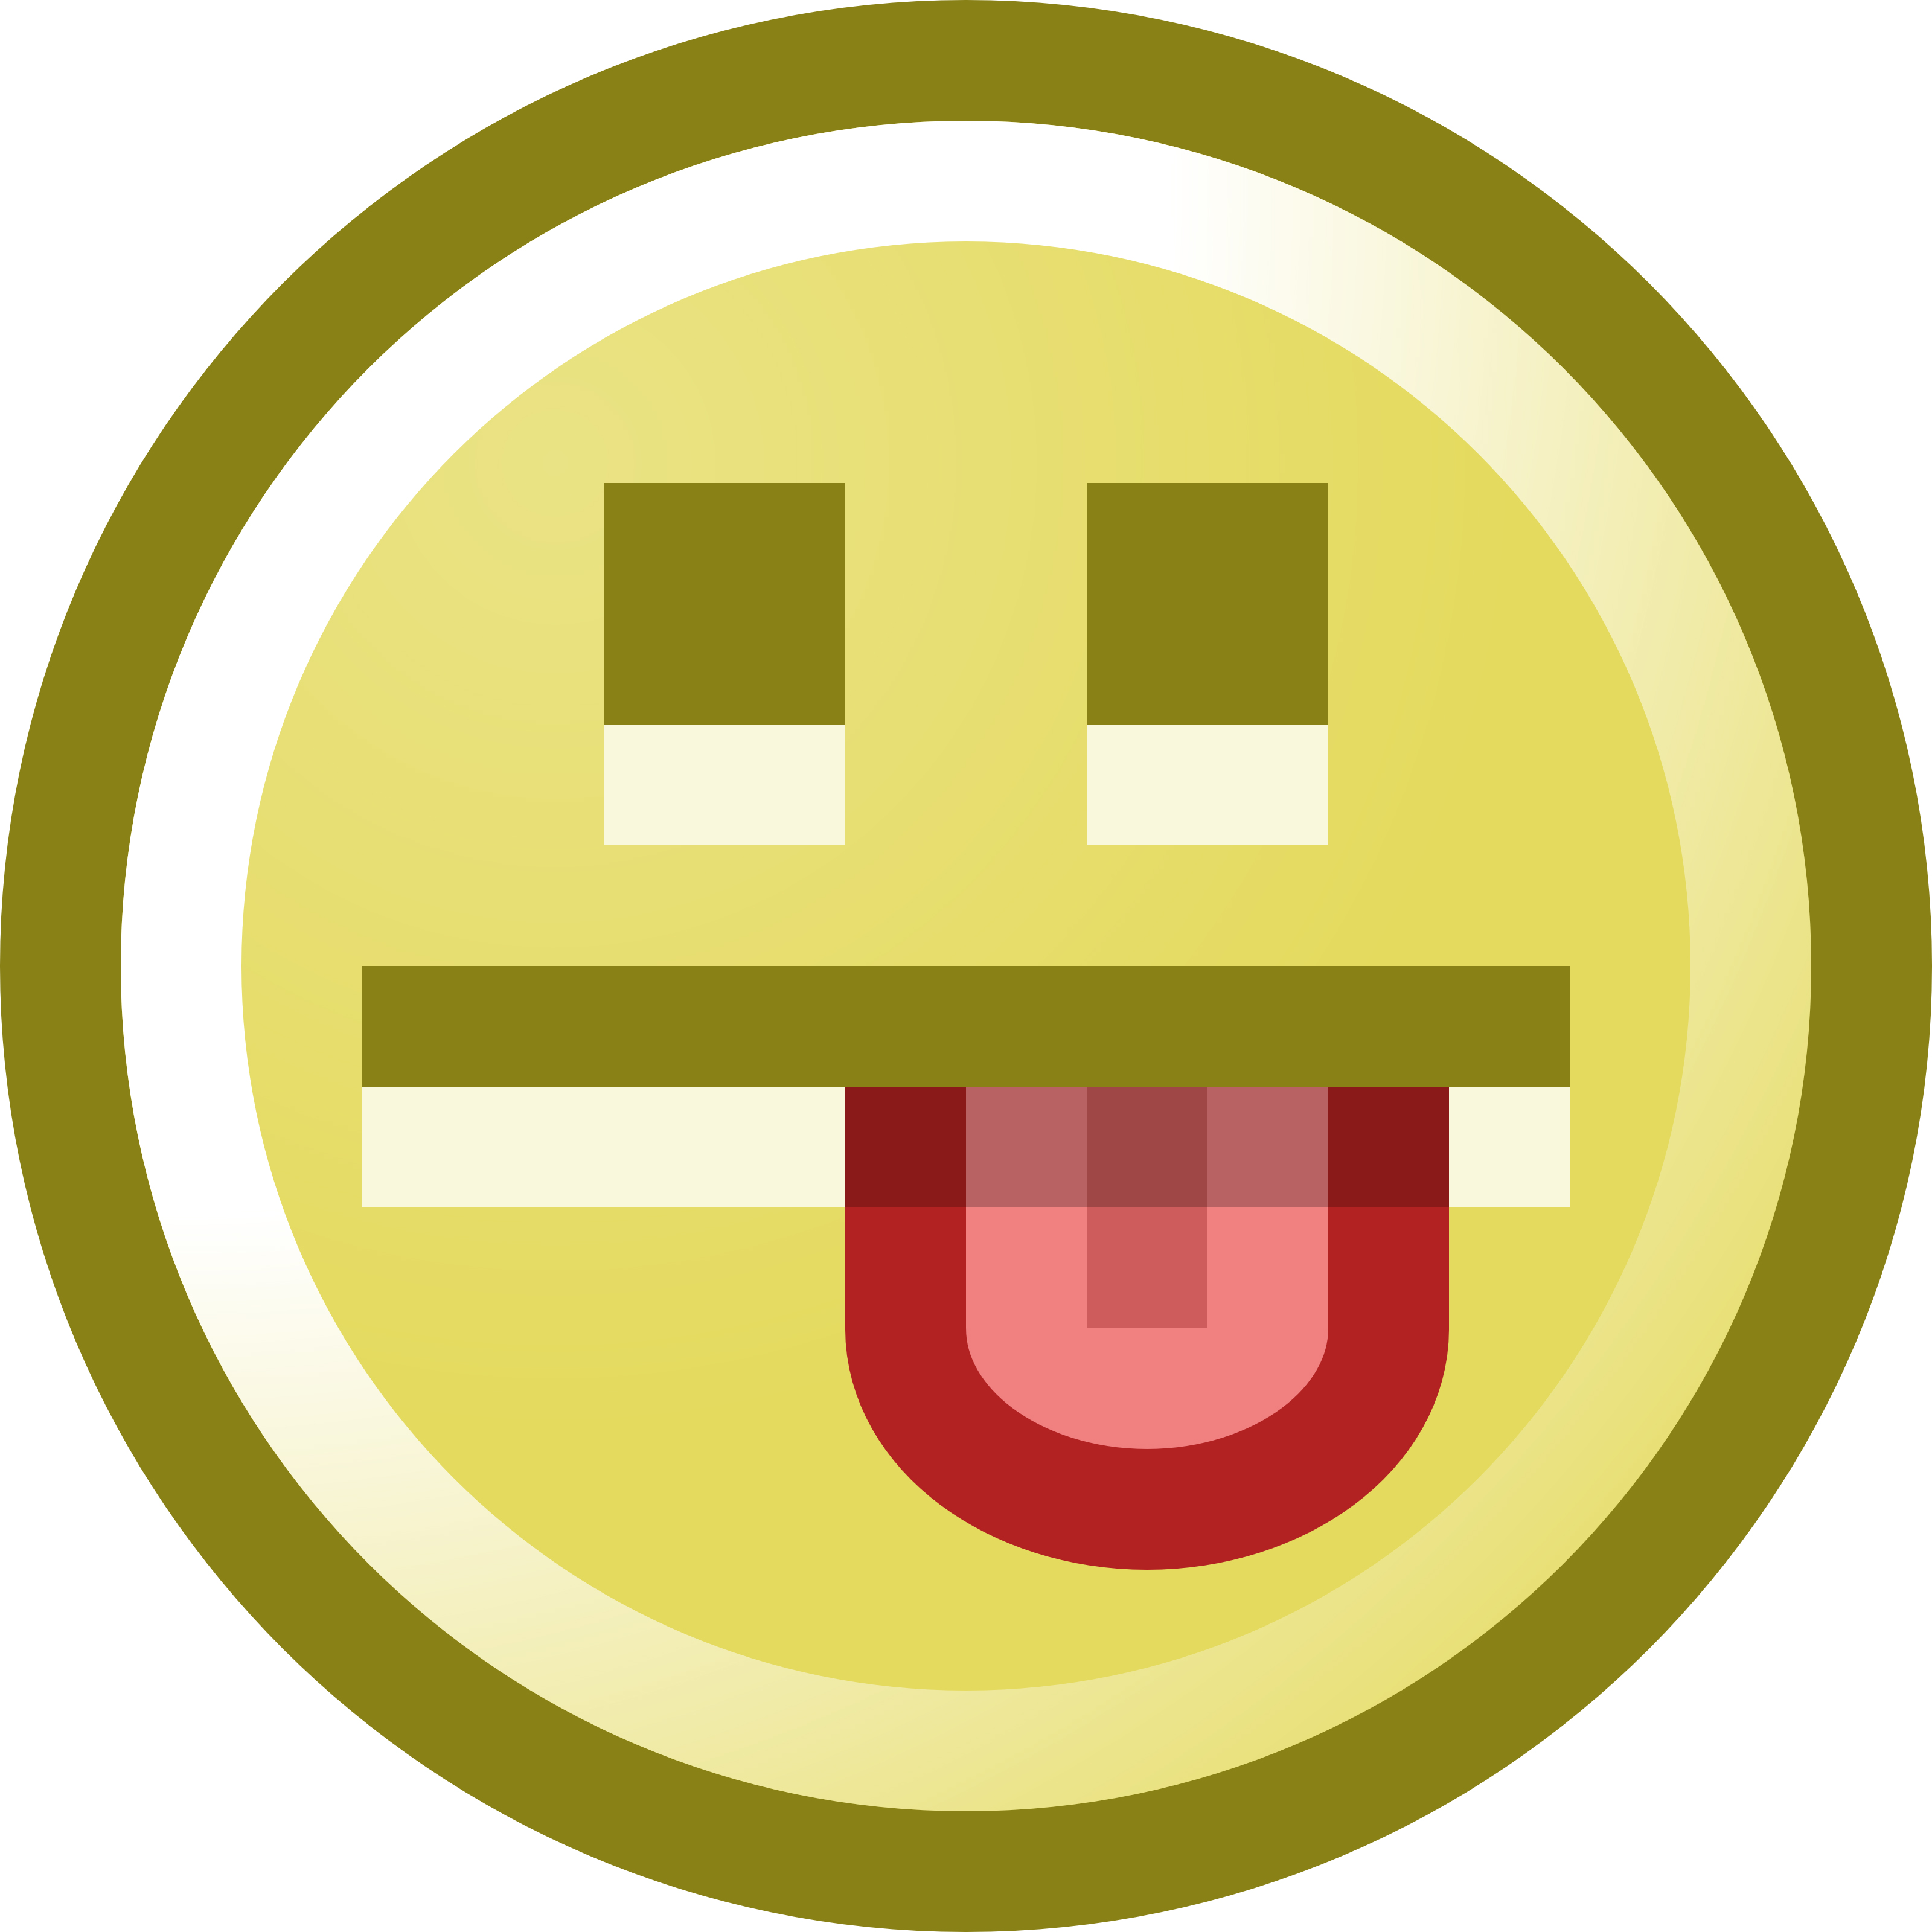 3200x3200 Free Smiley Face Sticking Tongue Out Clip Art Illustration